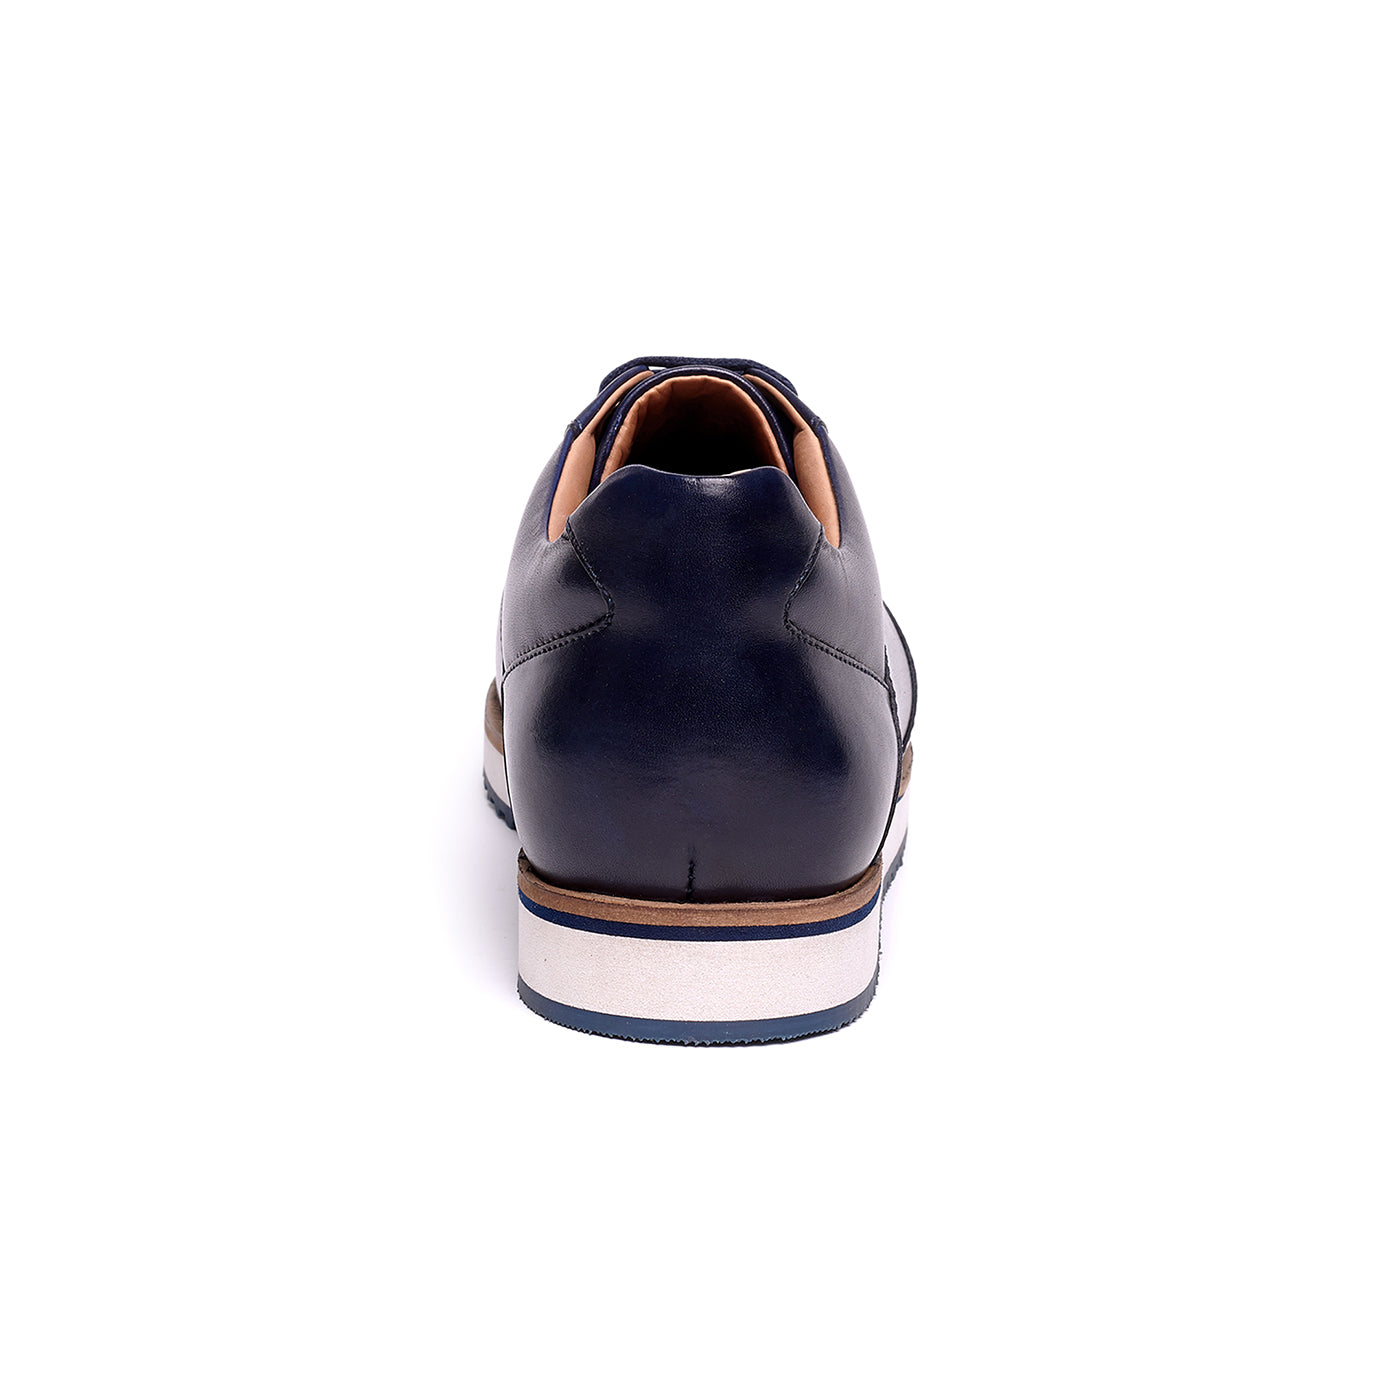 Barack Court Sneaker Navy Blue